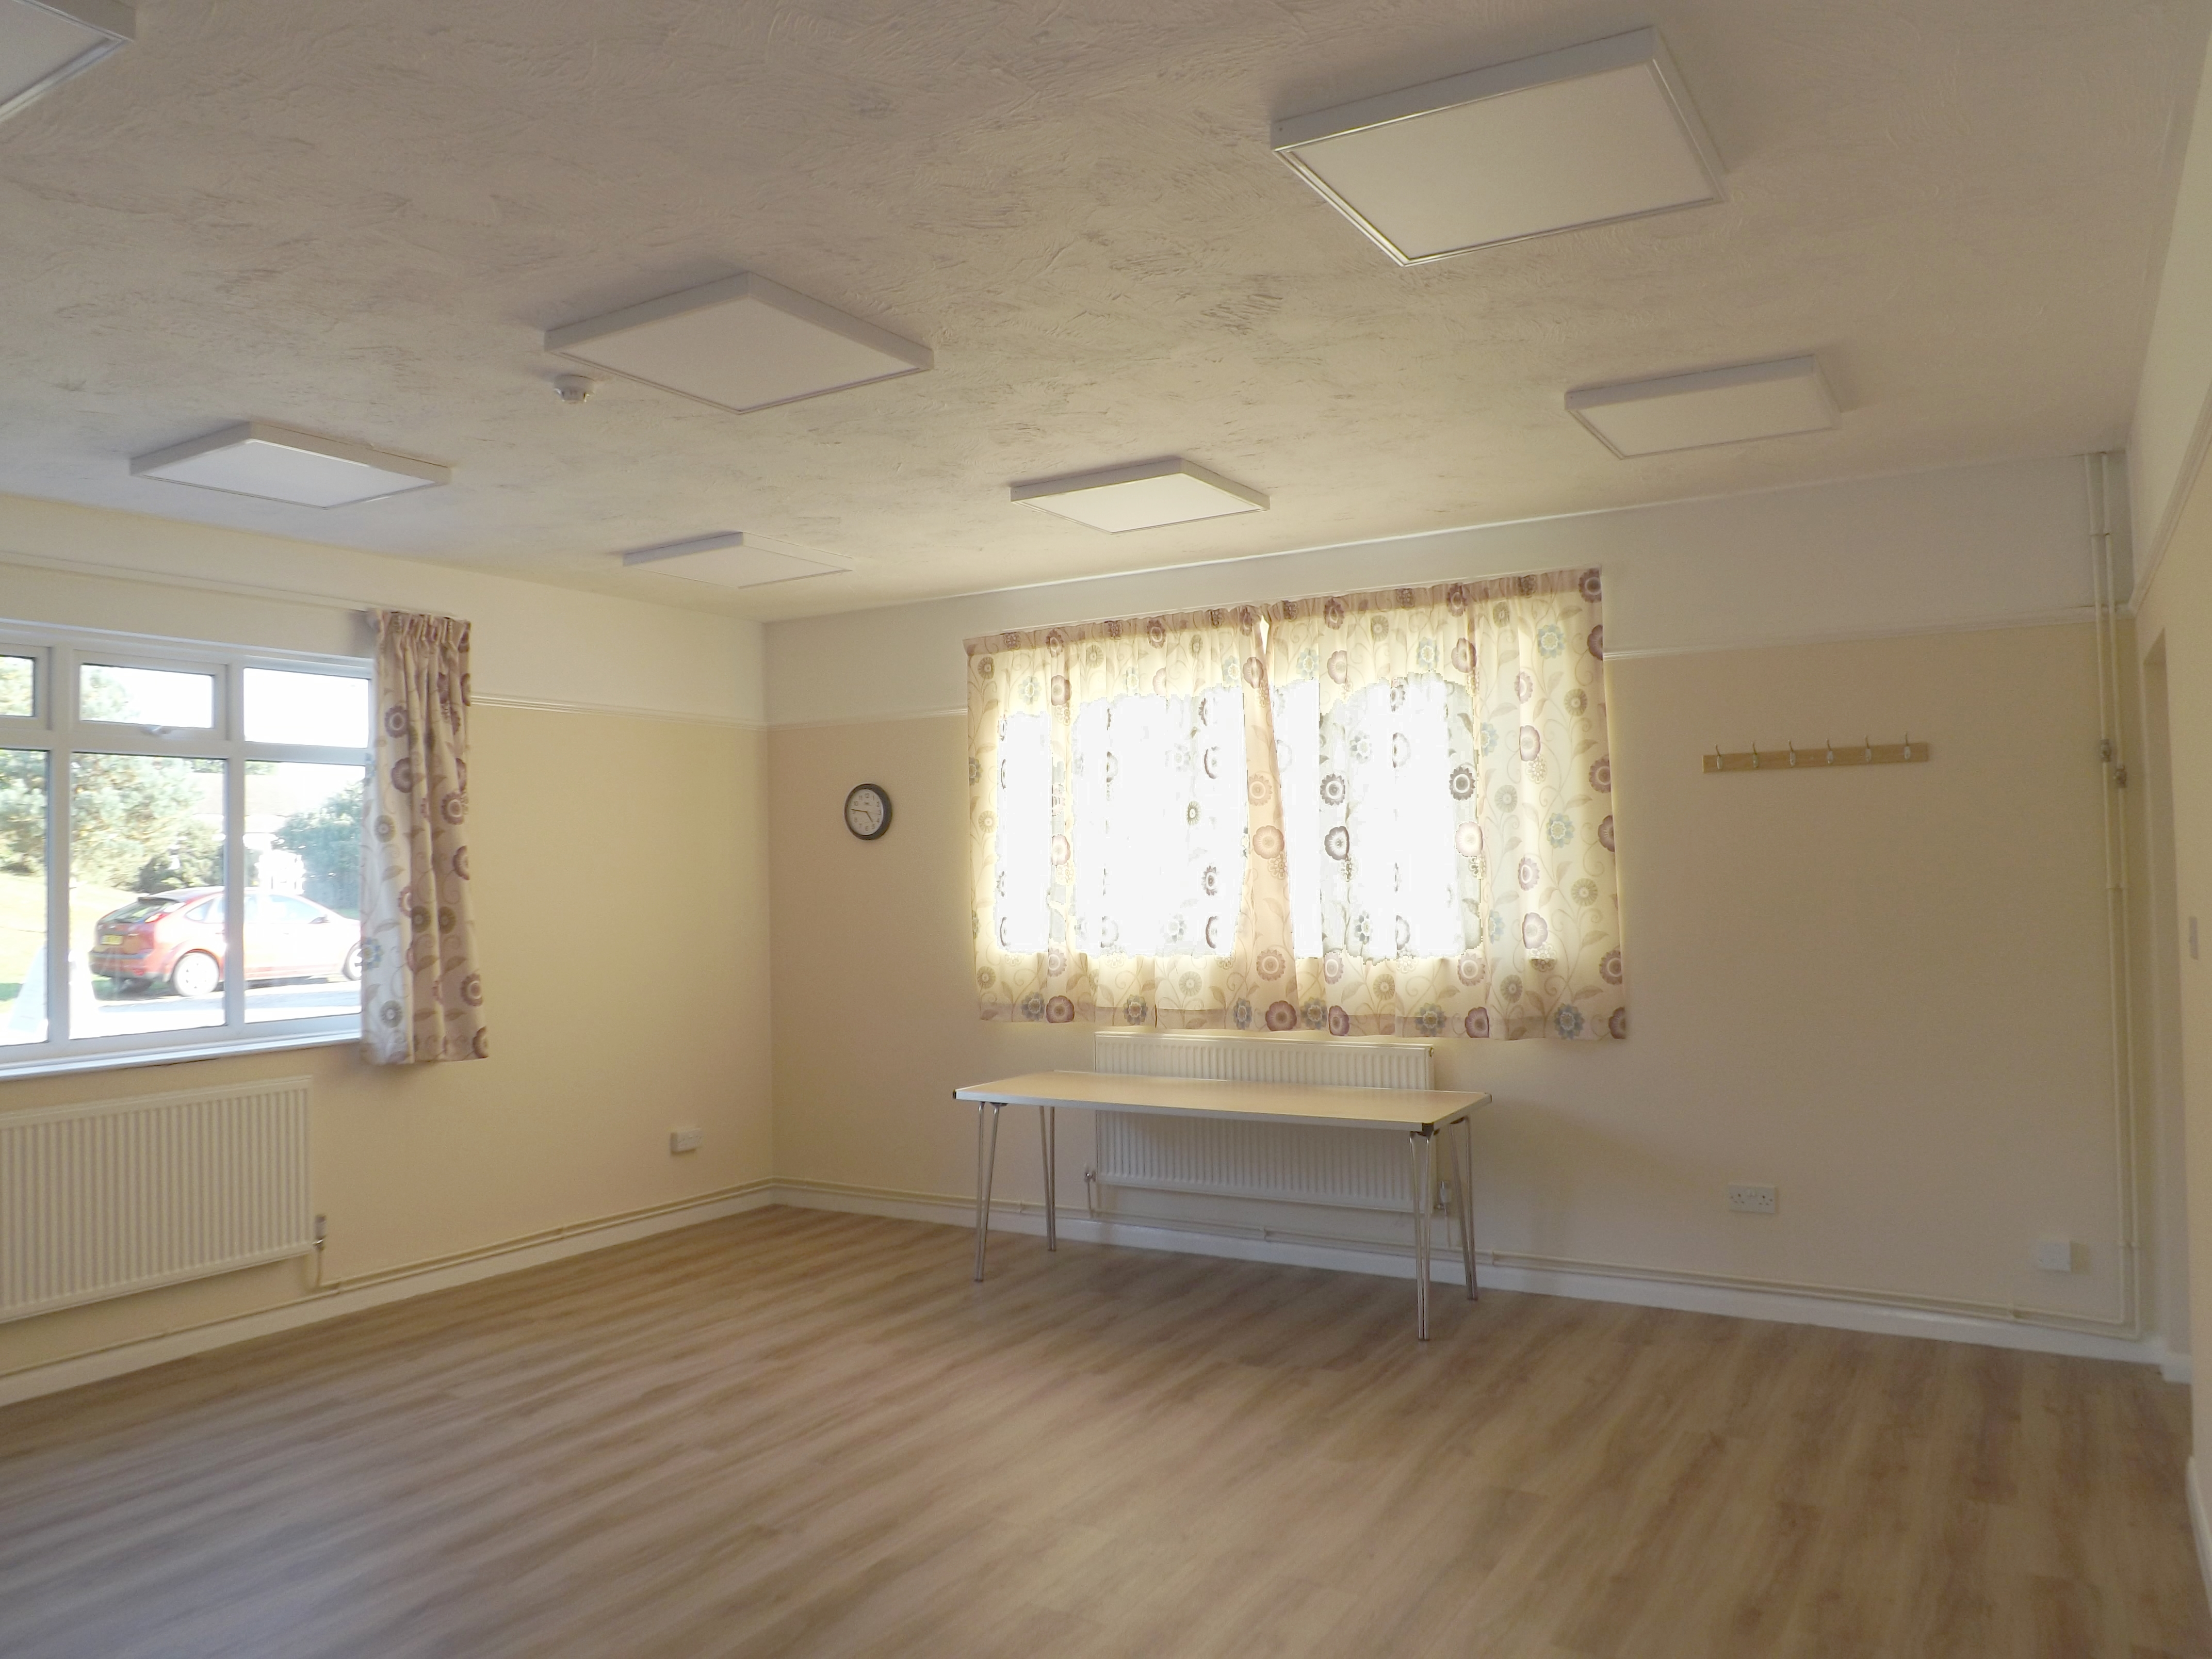 Whitehill Village Hall - Meeting Room Photo 2